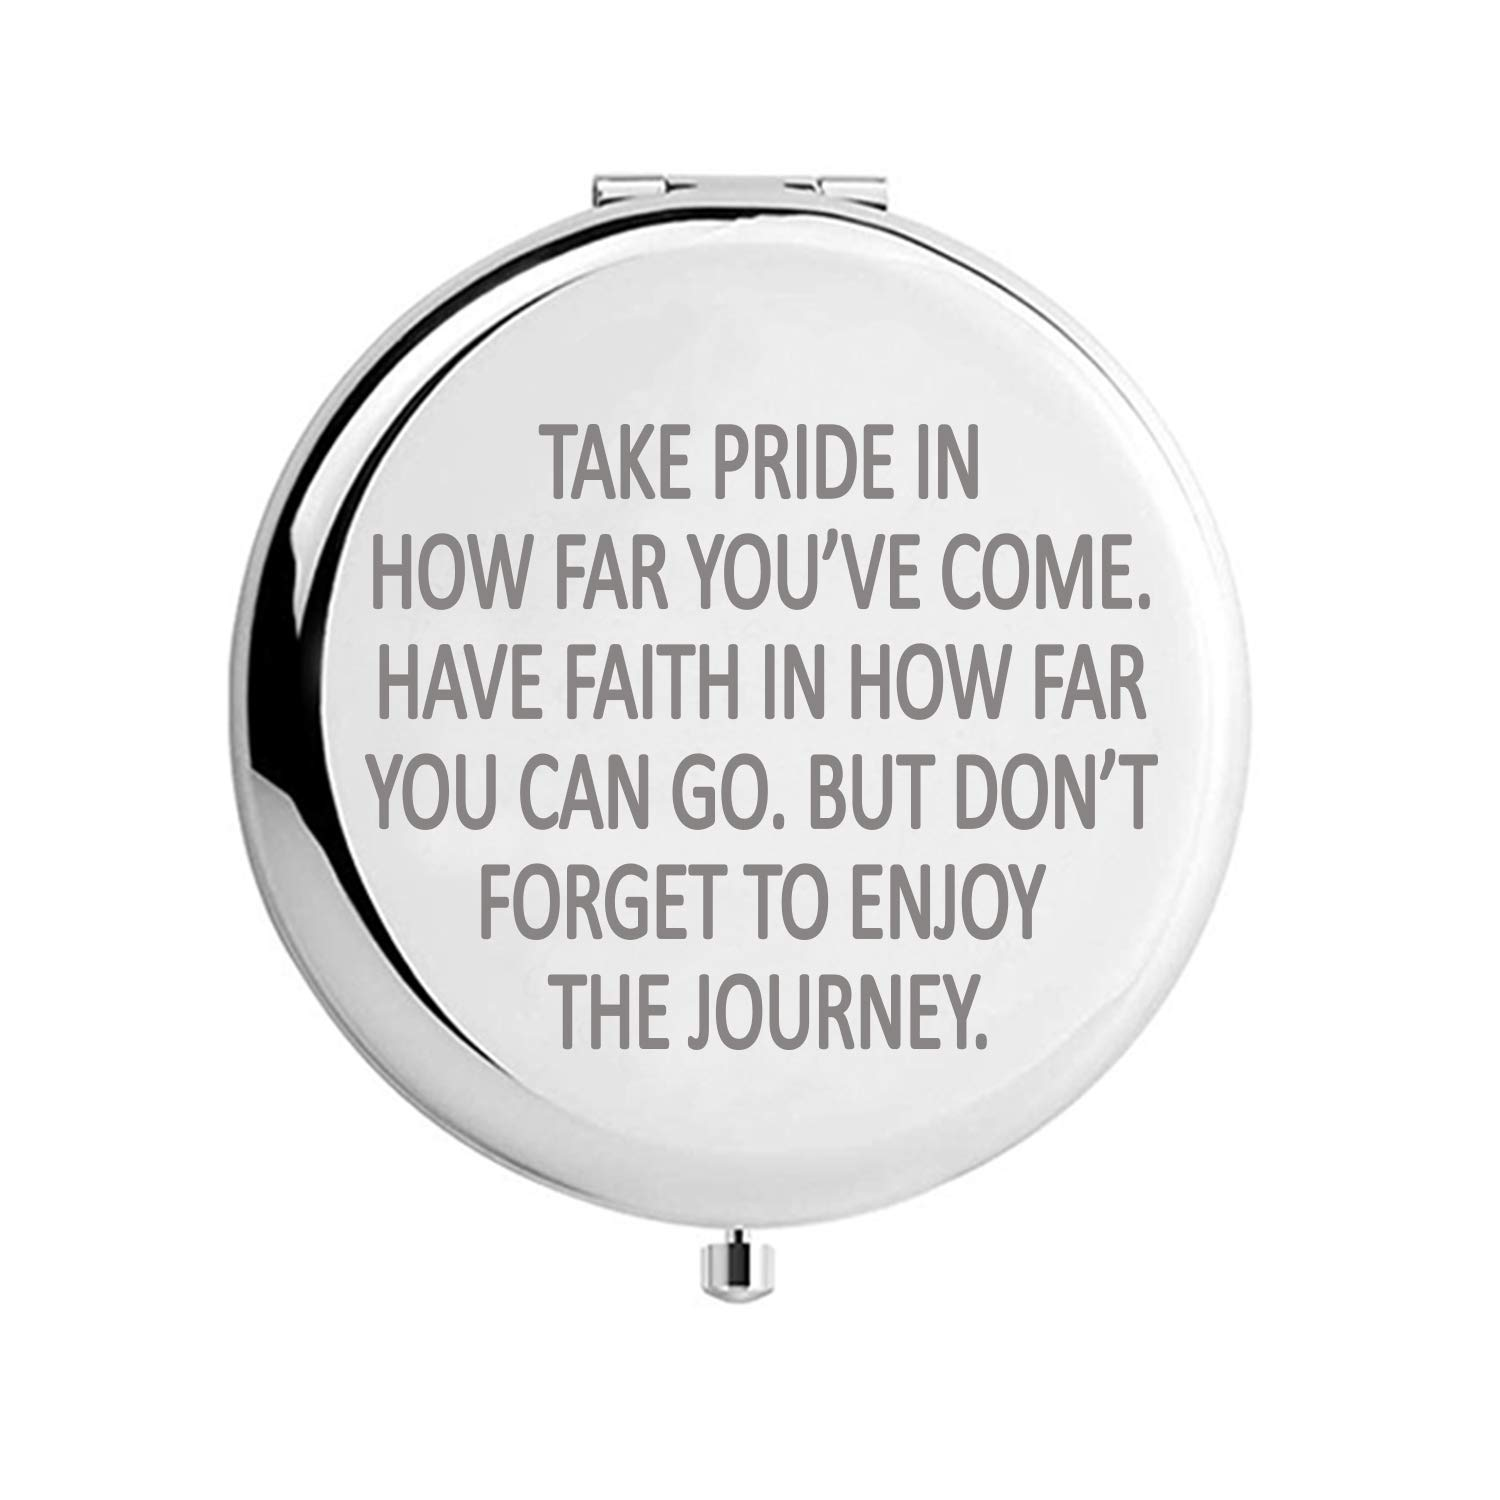 MOORAY 2019 Graduation Gifts for Her, Graduation Presents for Women, Graduation Party Decorations for Graduates, Engraved Gift Ideas for Birthday Christmas Take Pride 2.6inch